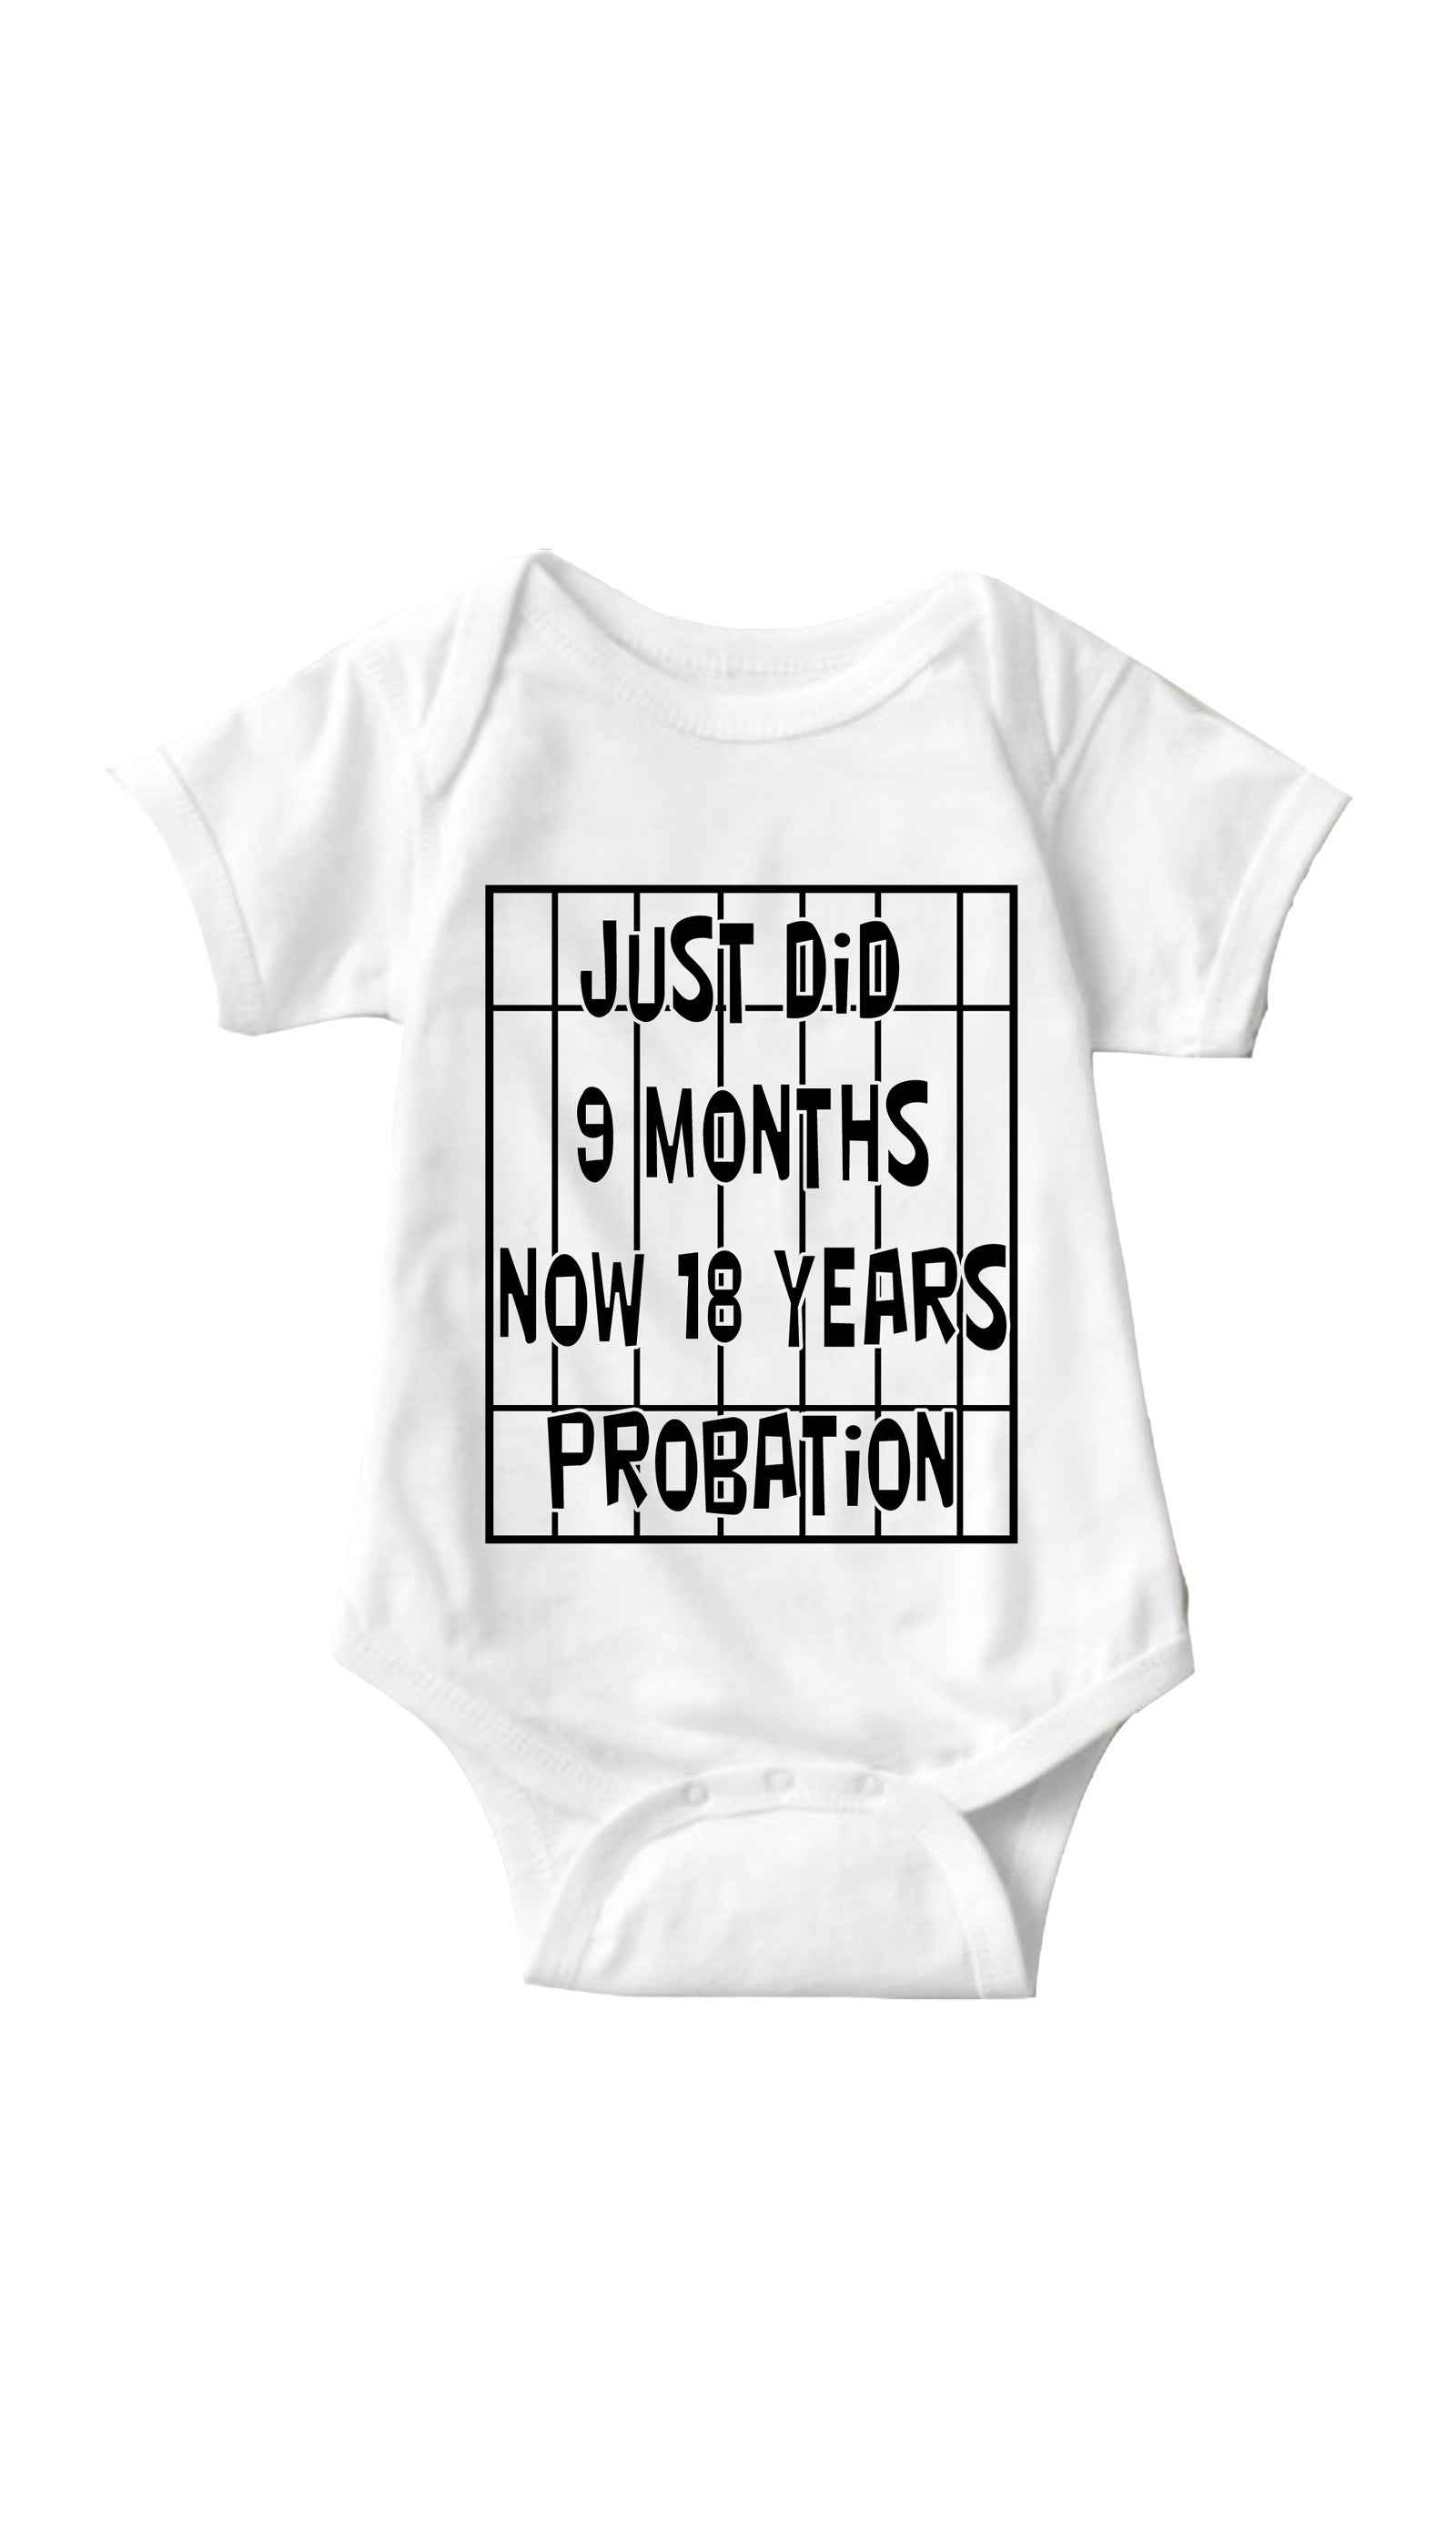 Just Did 9 Months Now 18 Years Probation White Infant Onesie | Sarcastic ME